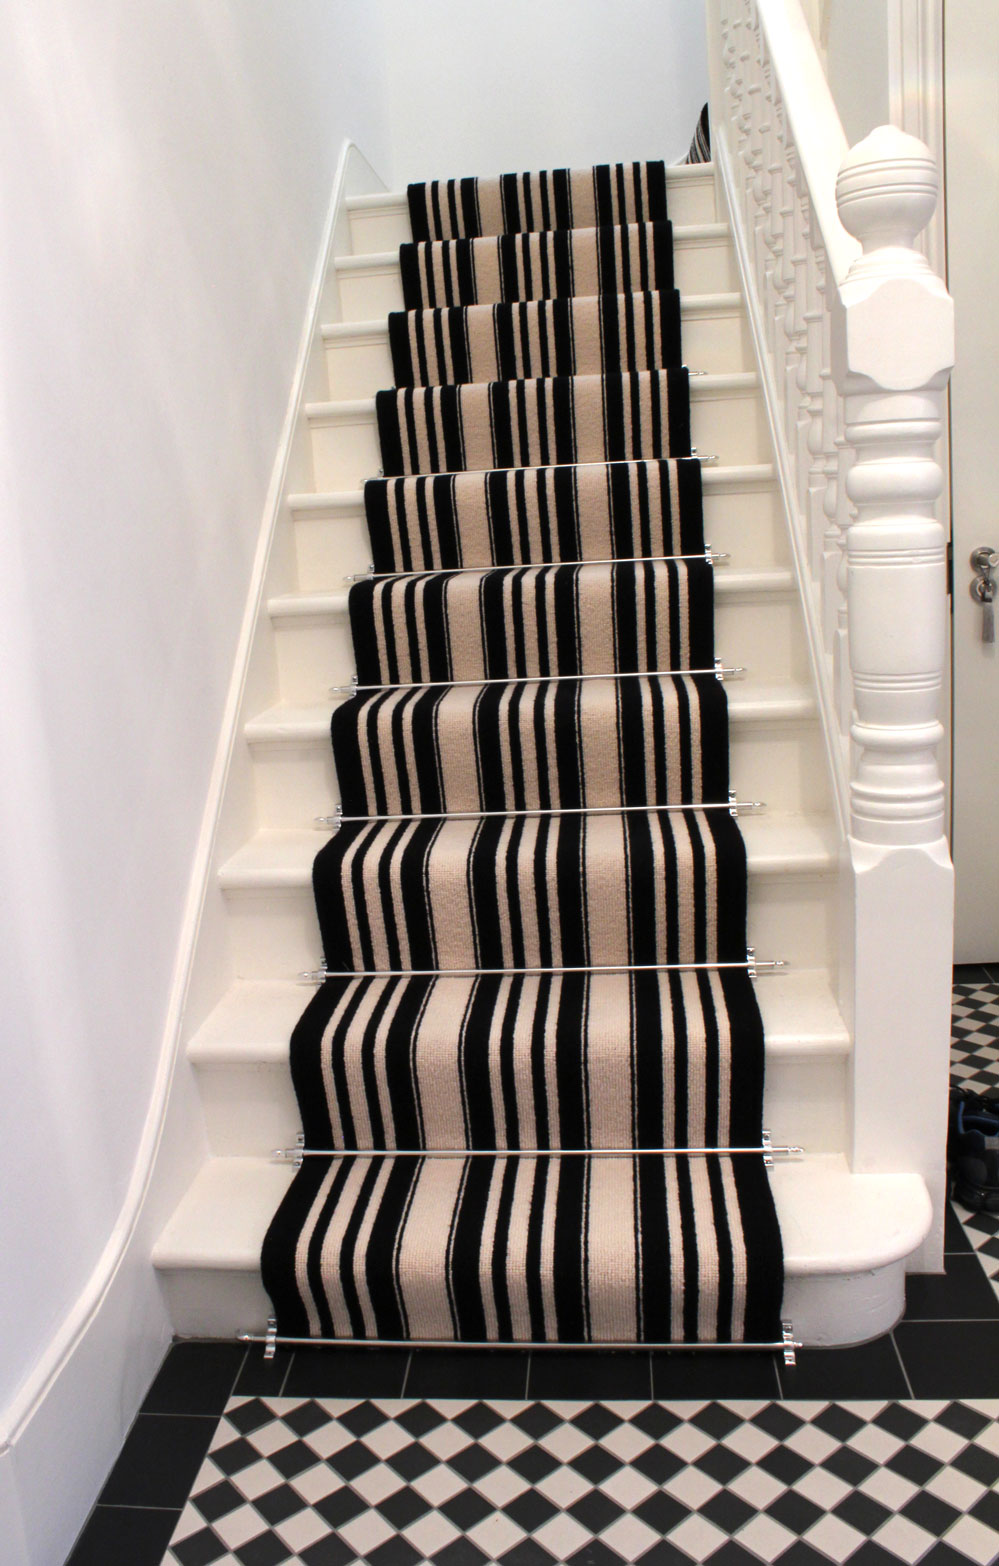 Best image of: modern carpet for stairs ideas sgdgnvk